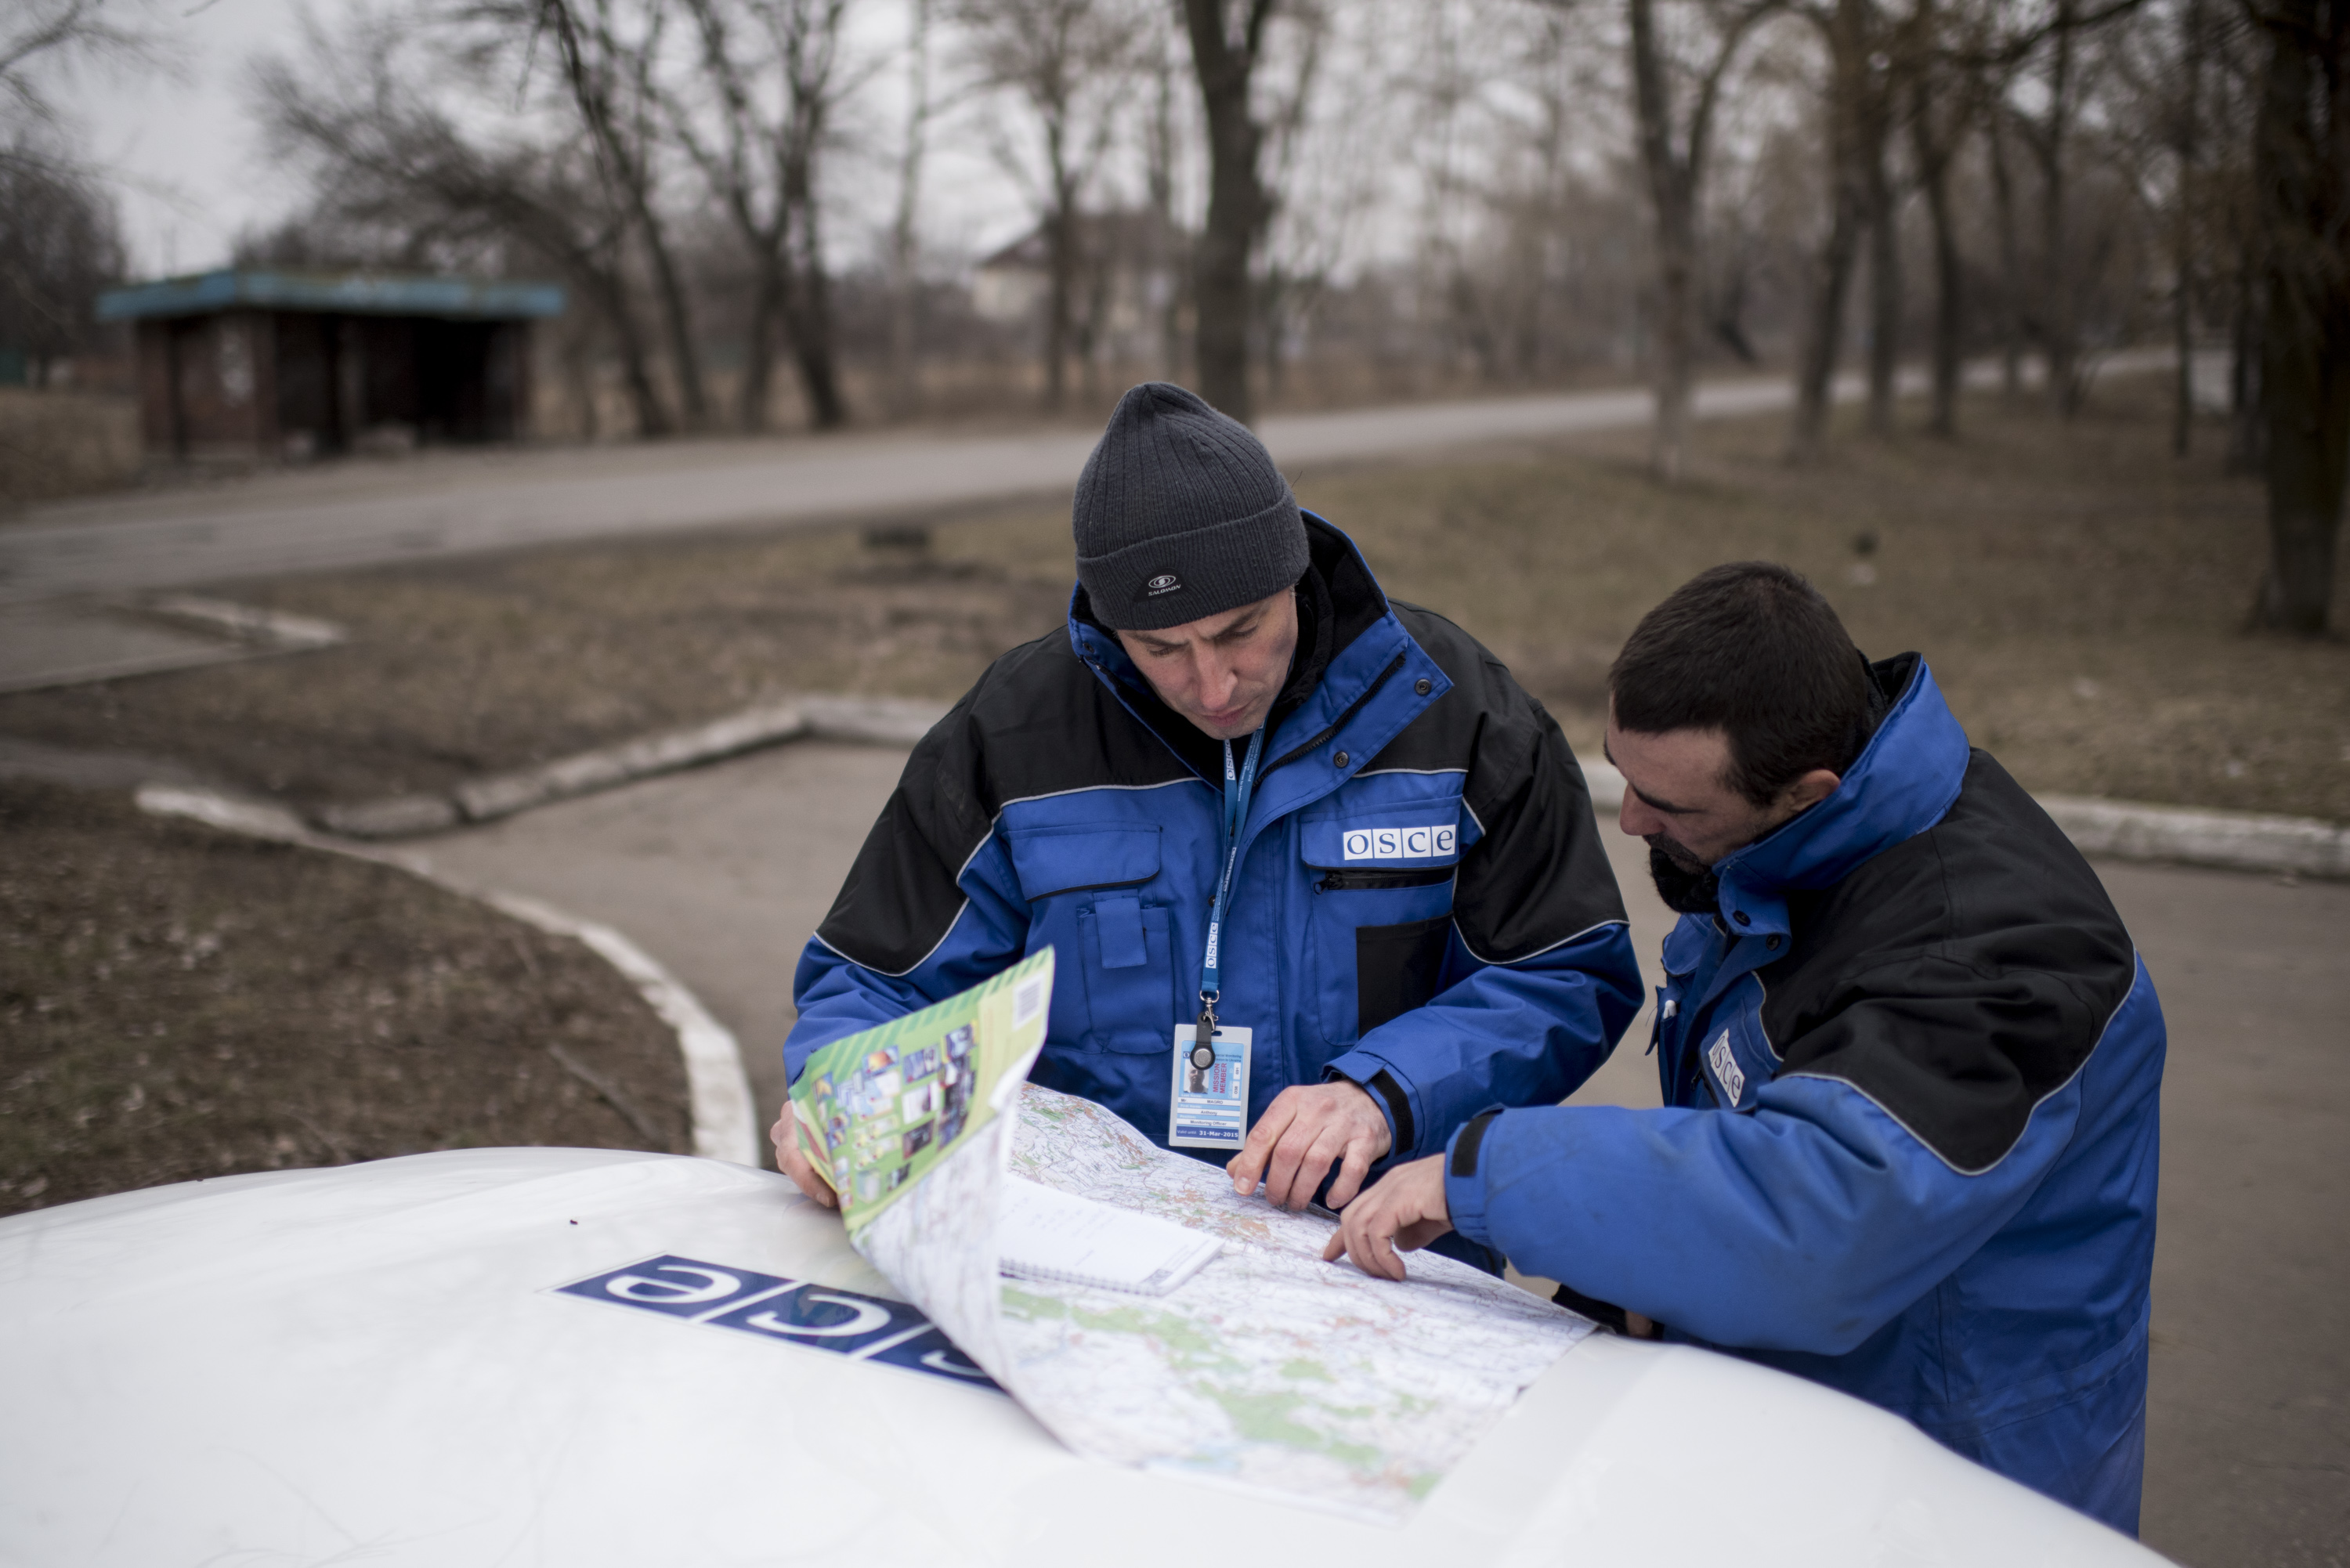 OSCE monitors reading their map on a car bonnet